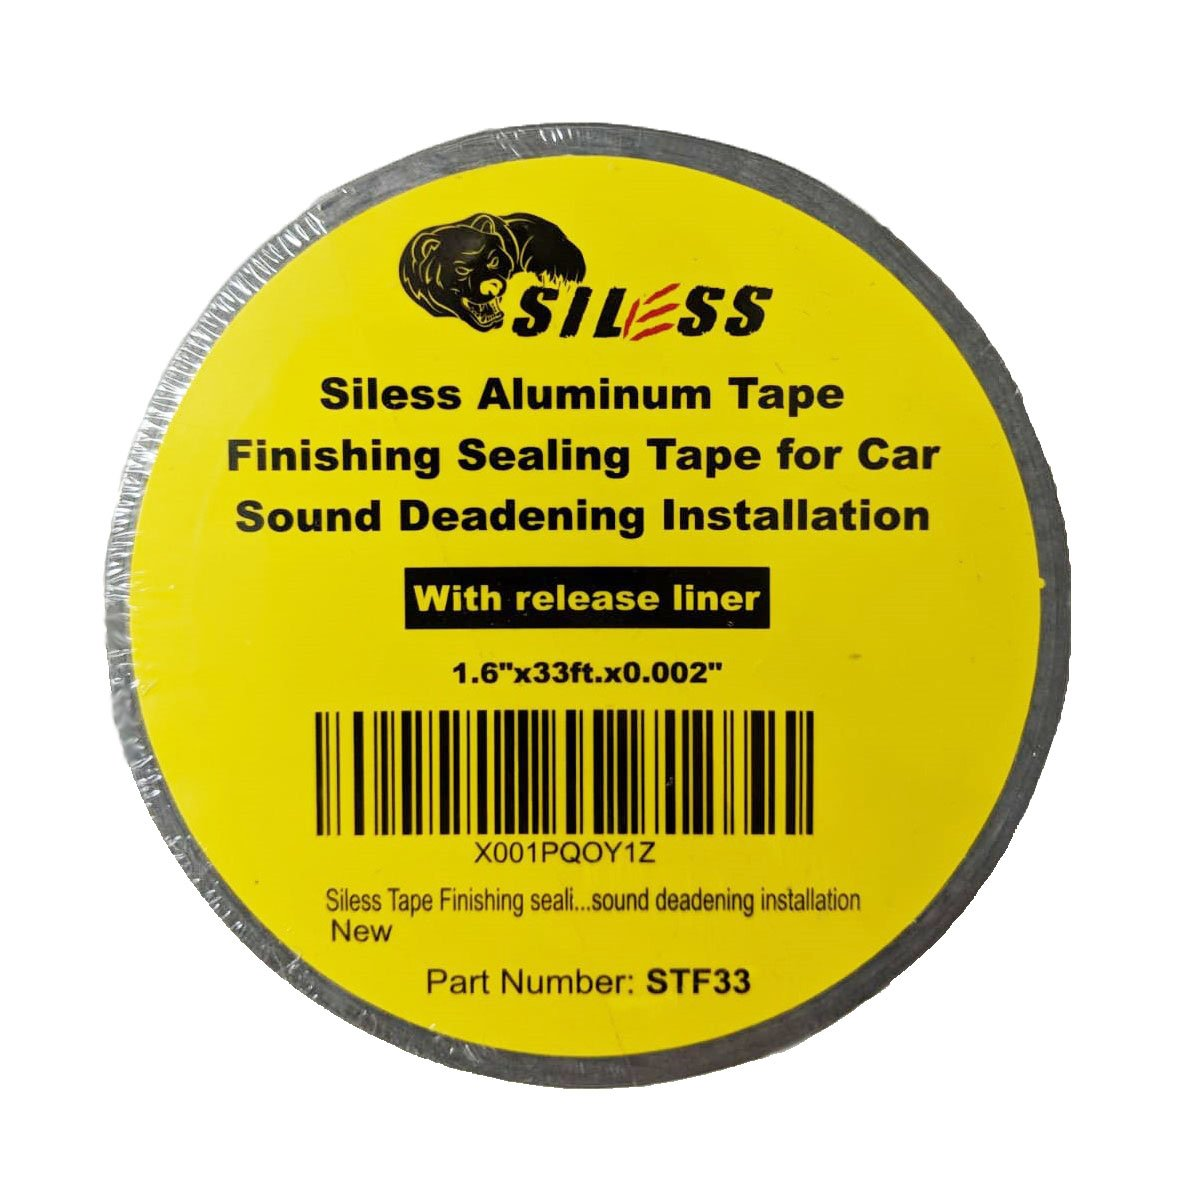 Siless Aluminum Tape Finishing sealing tape for Car Sound Deadening Mat installation - Sound Deadener Mat Finish Tape Roll Sound Insulation - Dampening Door Trunk Rood Hood